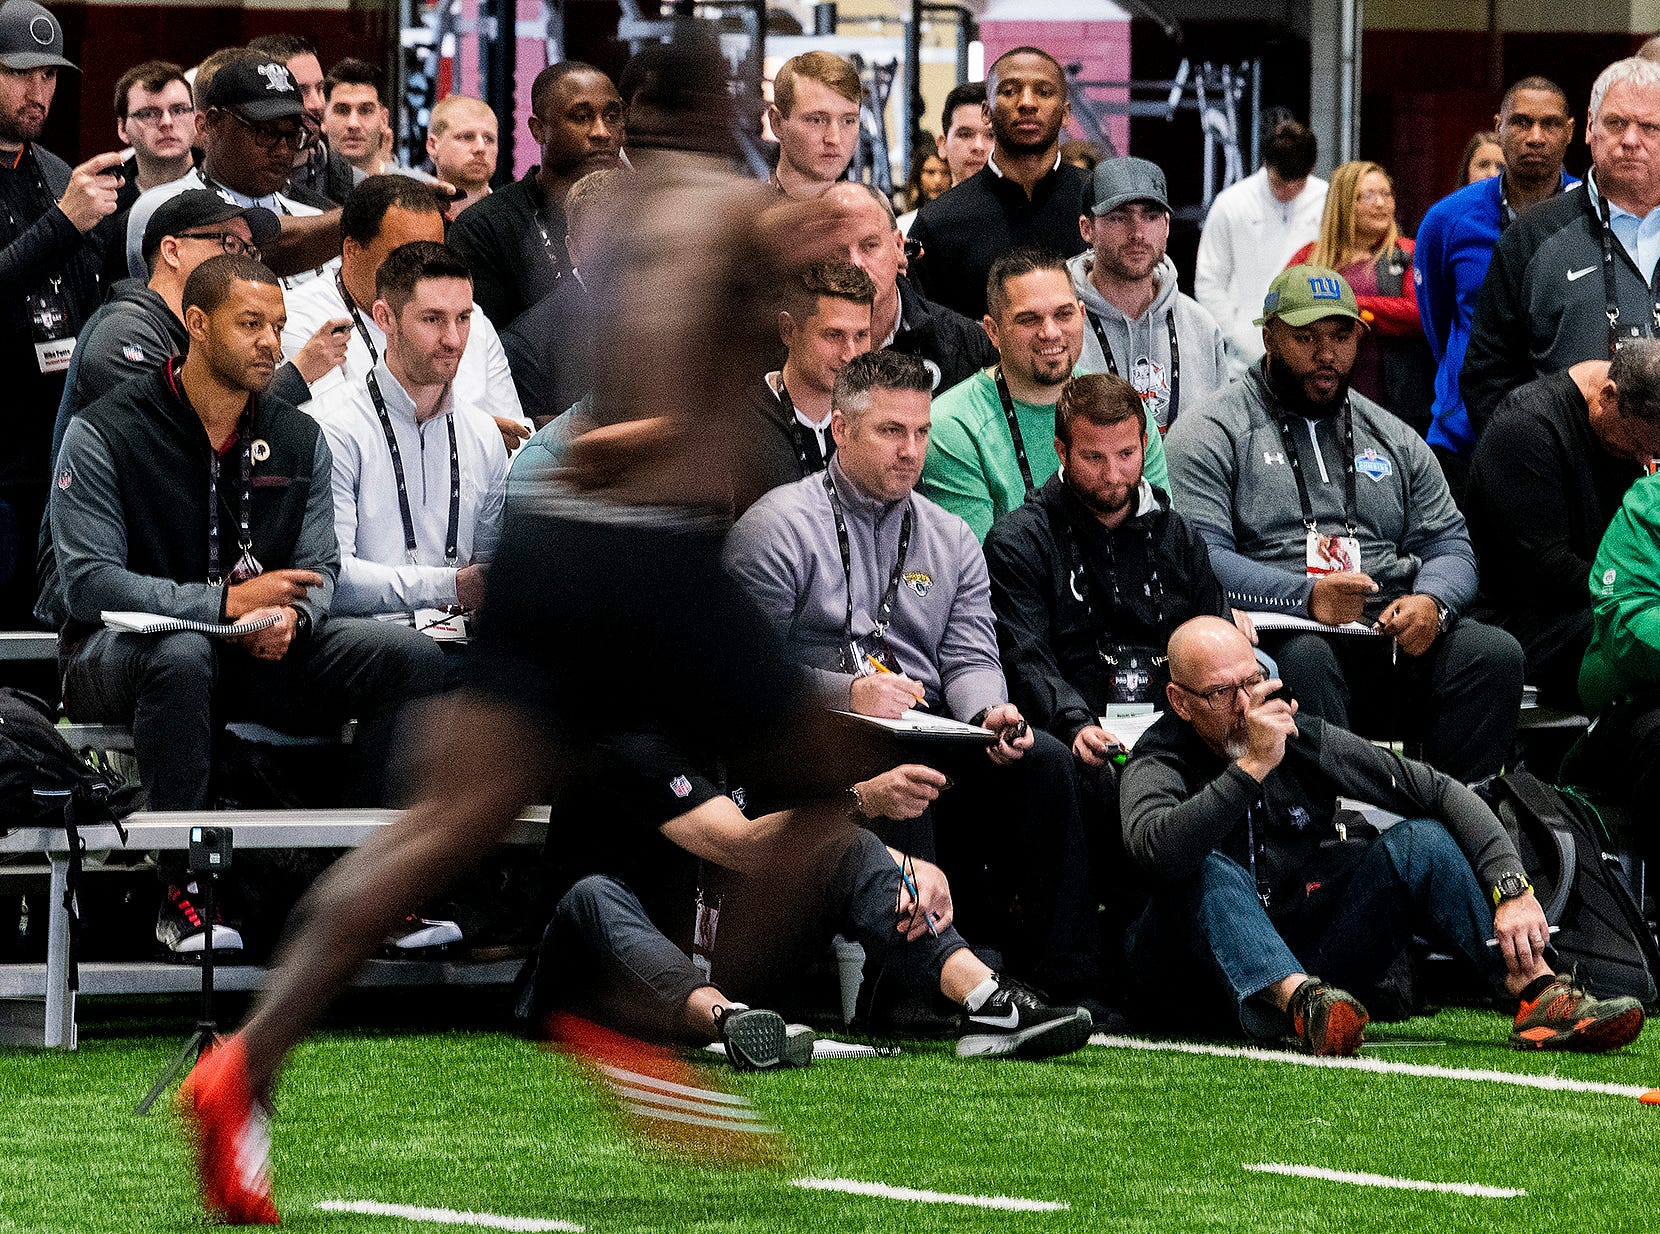 NFL scouts time players as they run the 40 during Pro Day on the University of Alabama campus in Tuscaloosa, Ala., on Tuesday March 19, 2019.